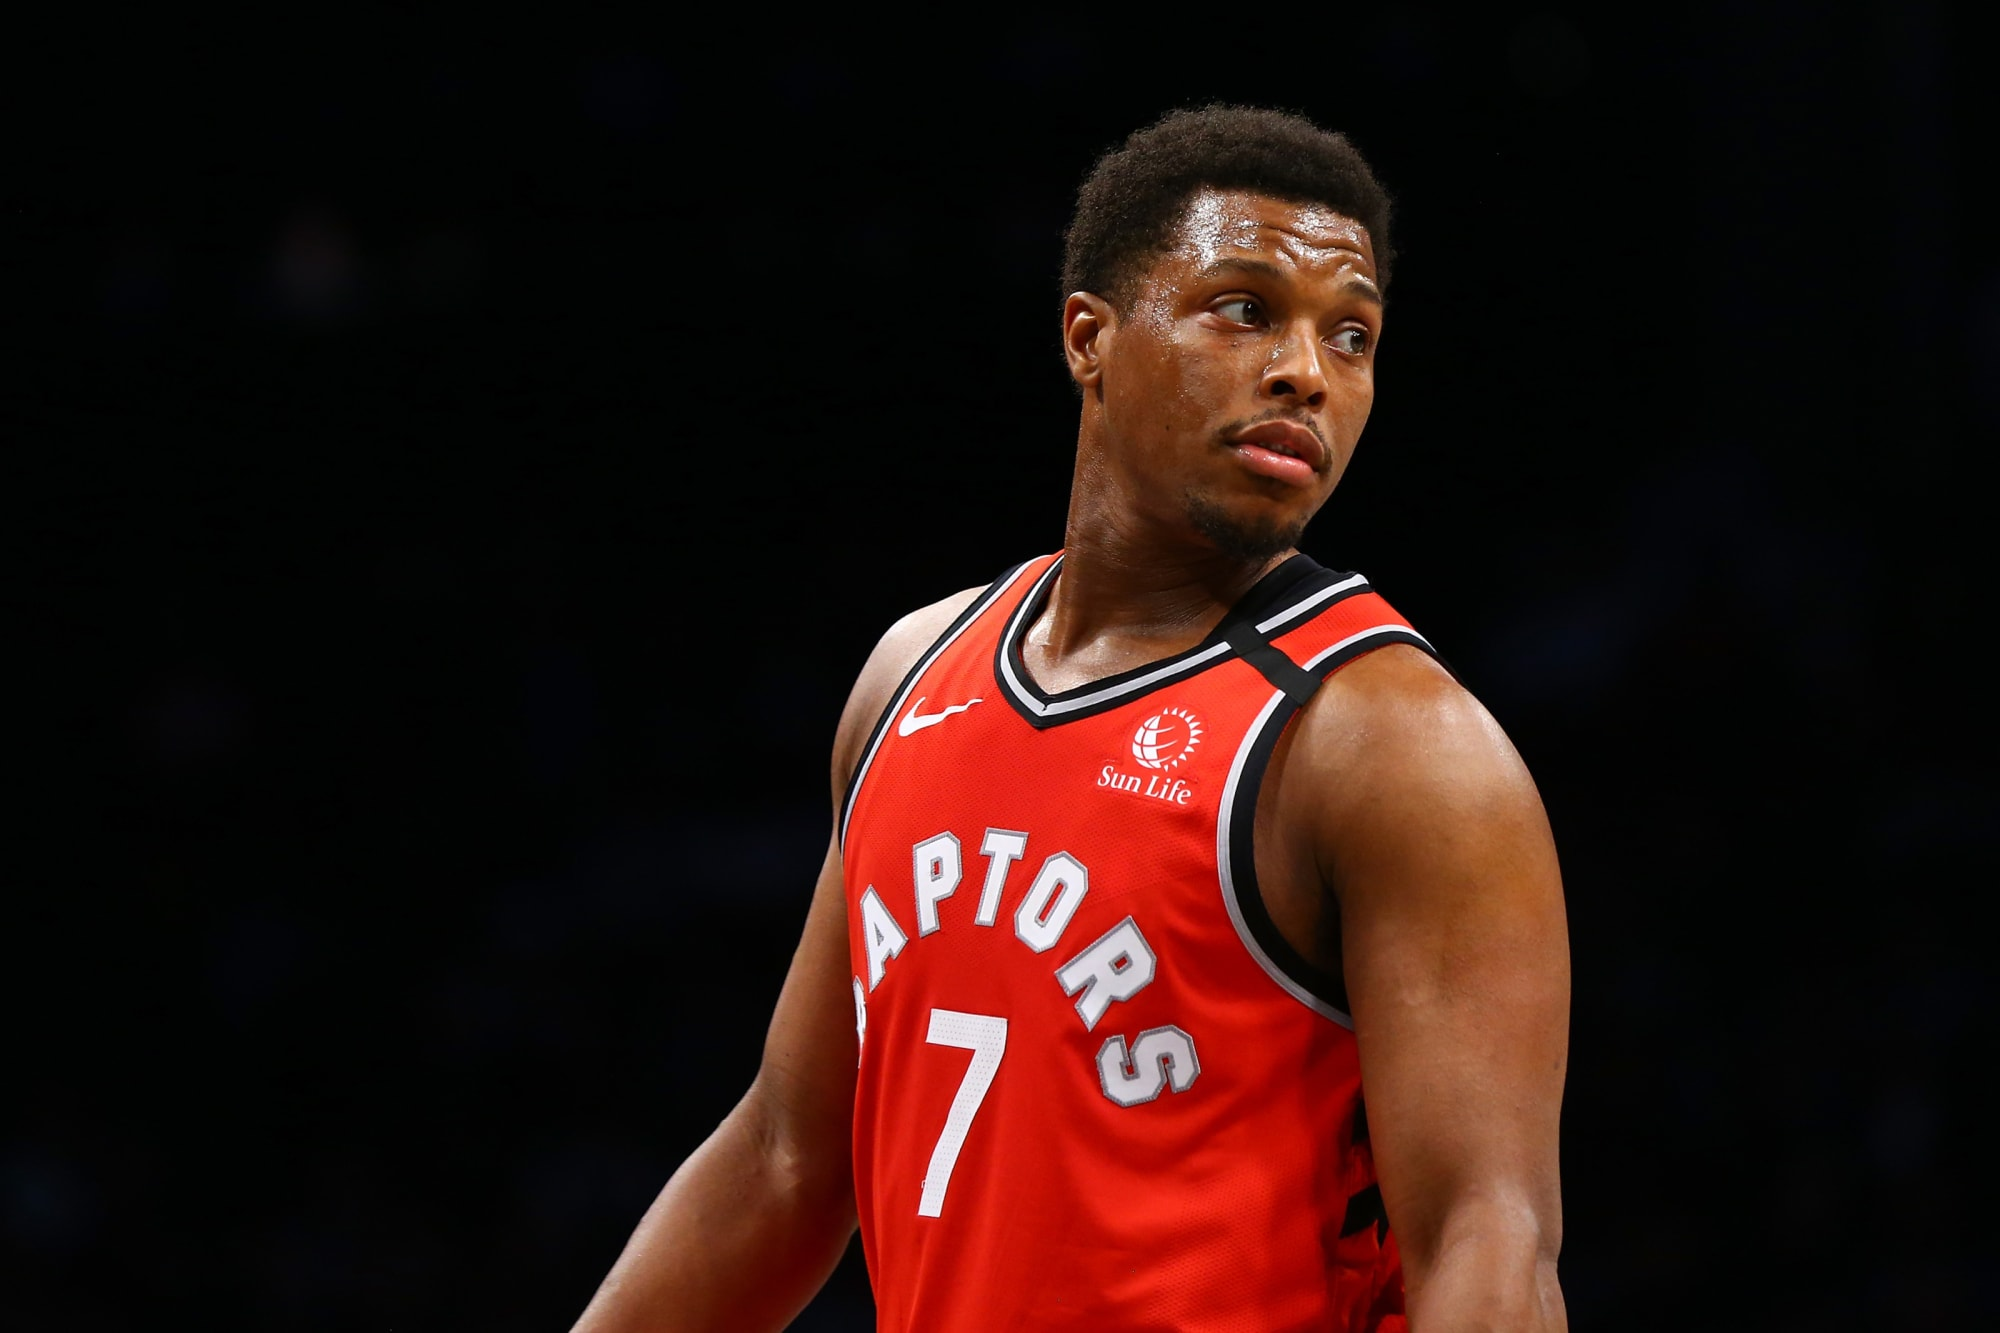 Toronto Raptors: All 3 possible outcomes for Kyle Lowry this season